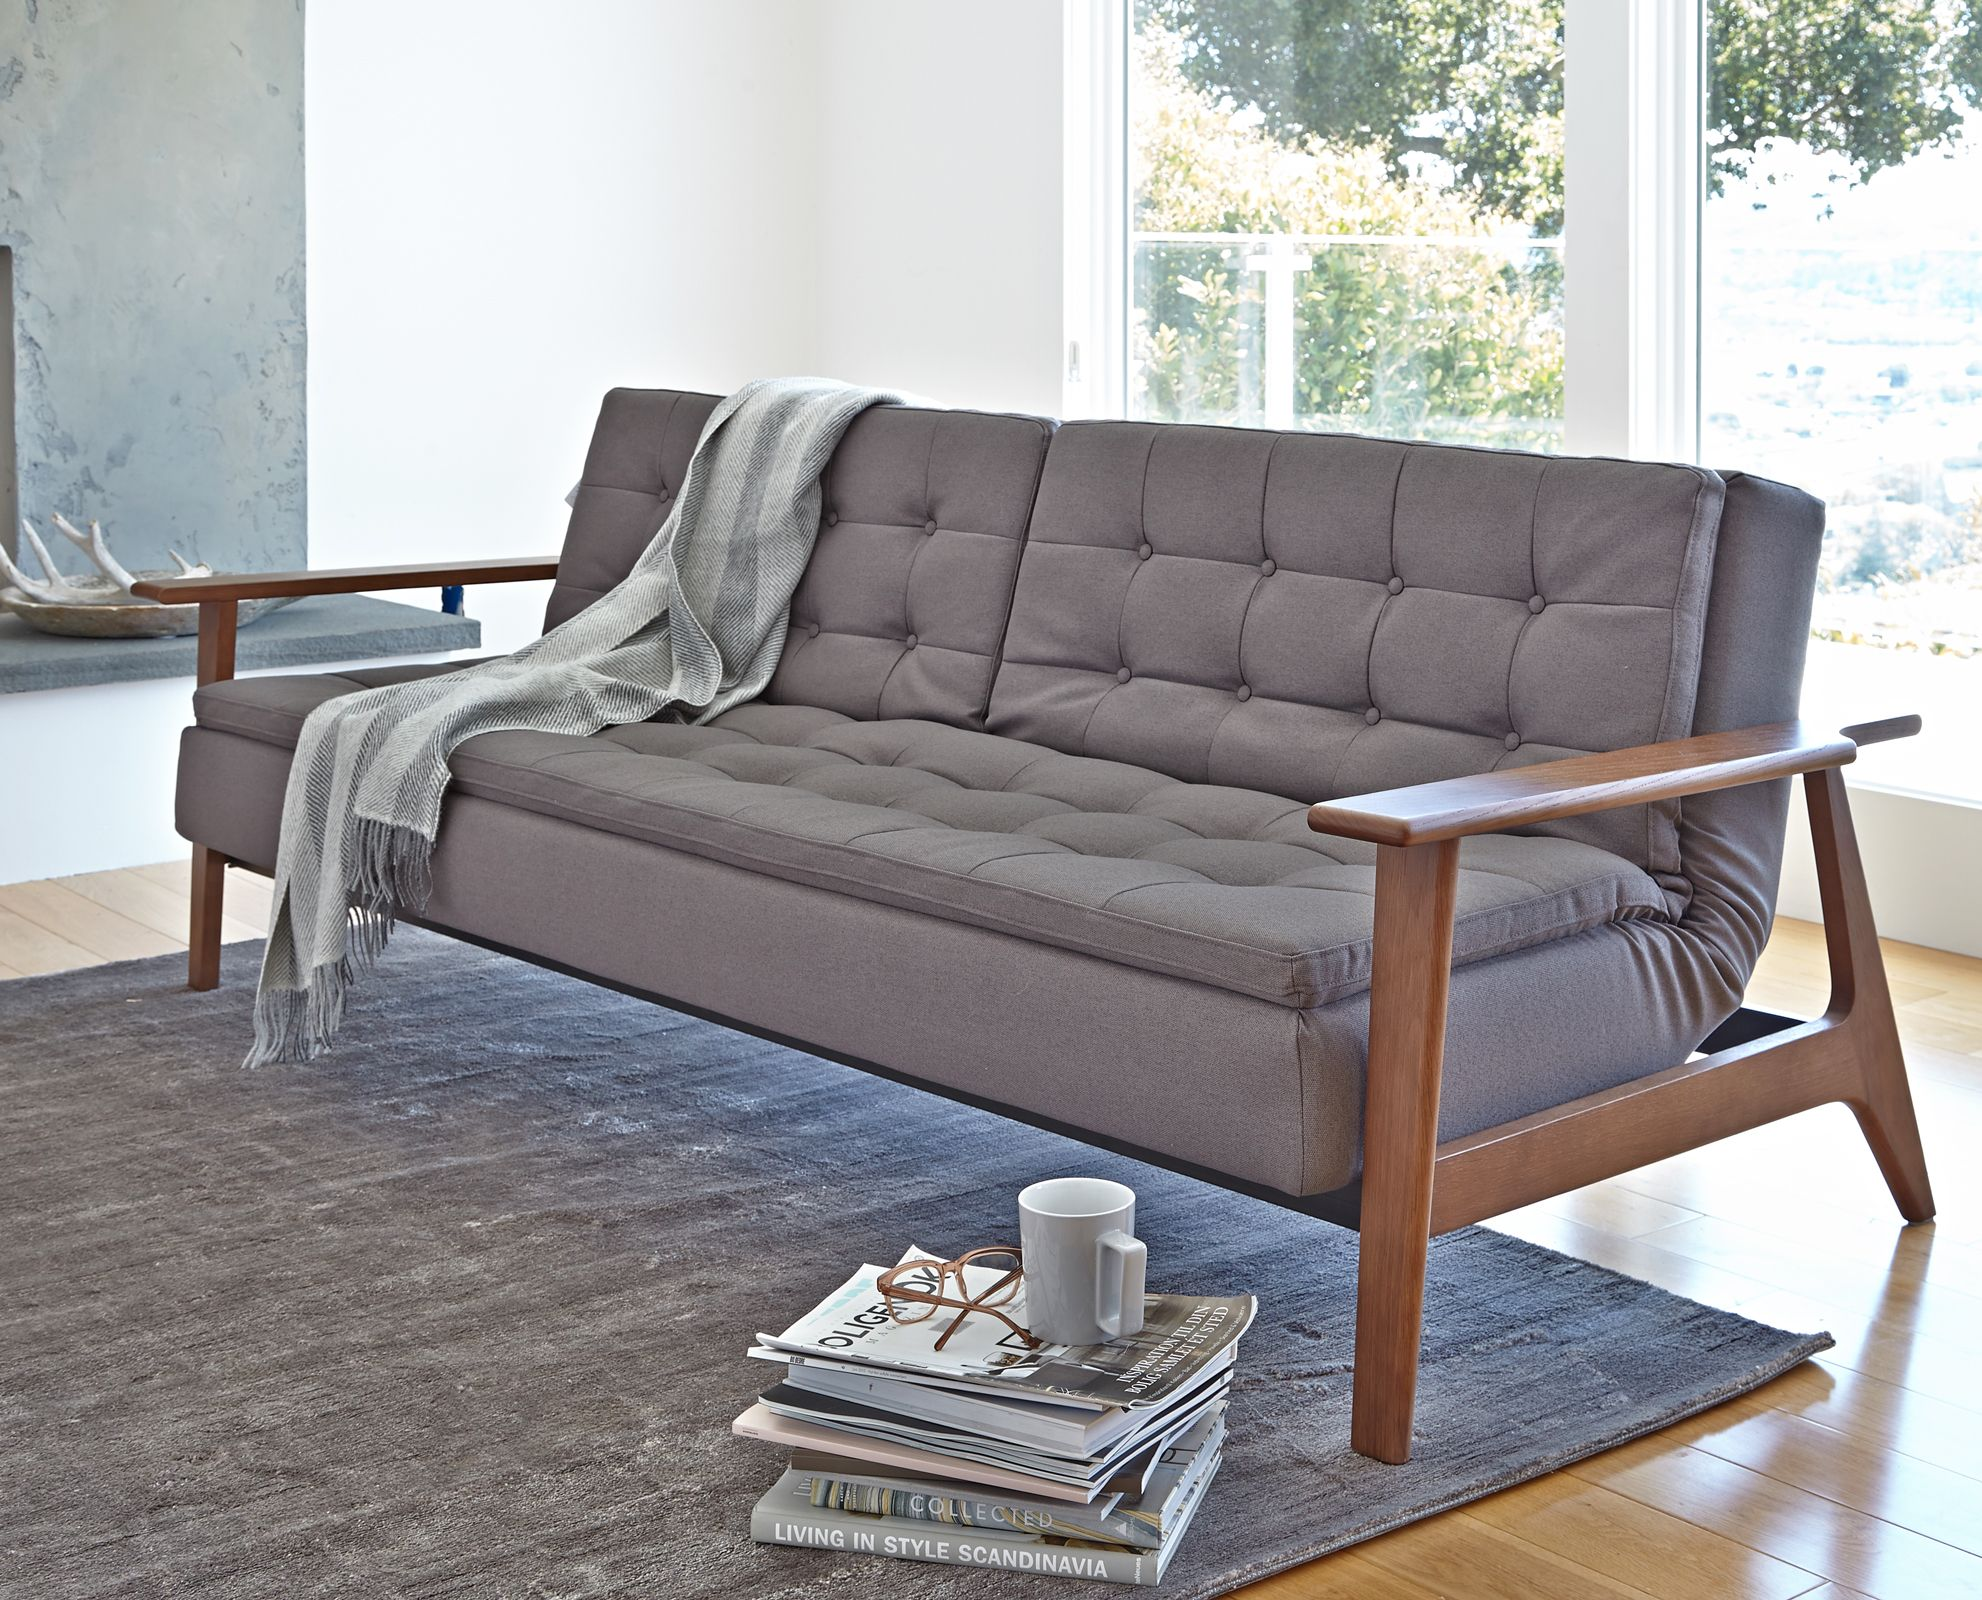 Tellima convertible sofa from dania furniture co futon